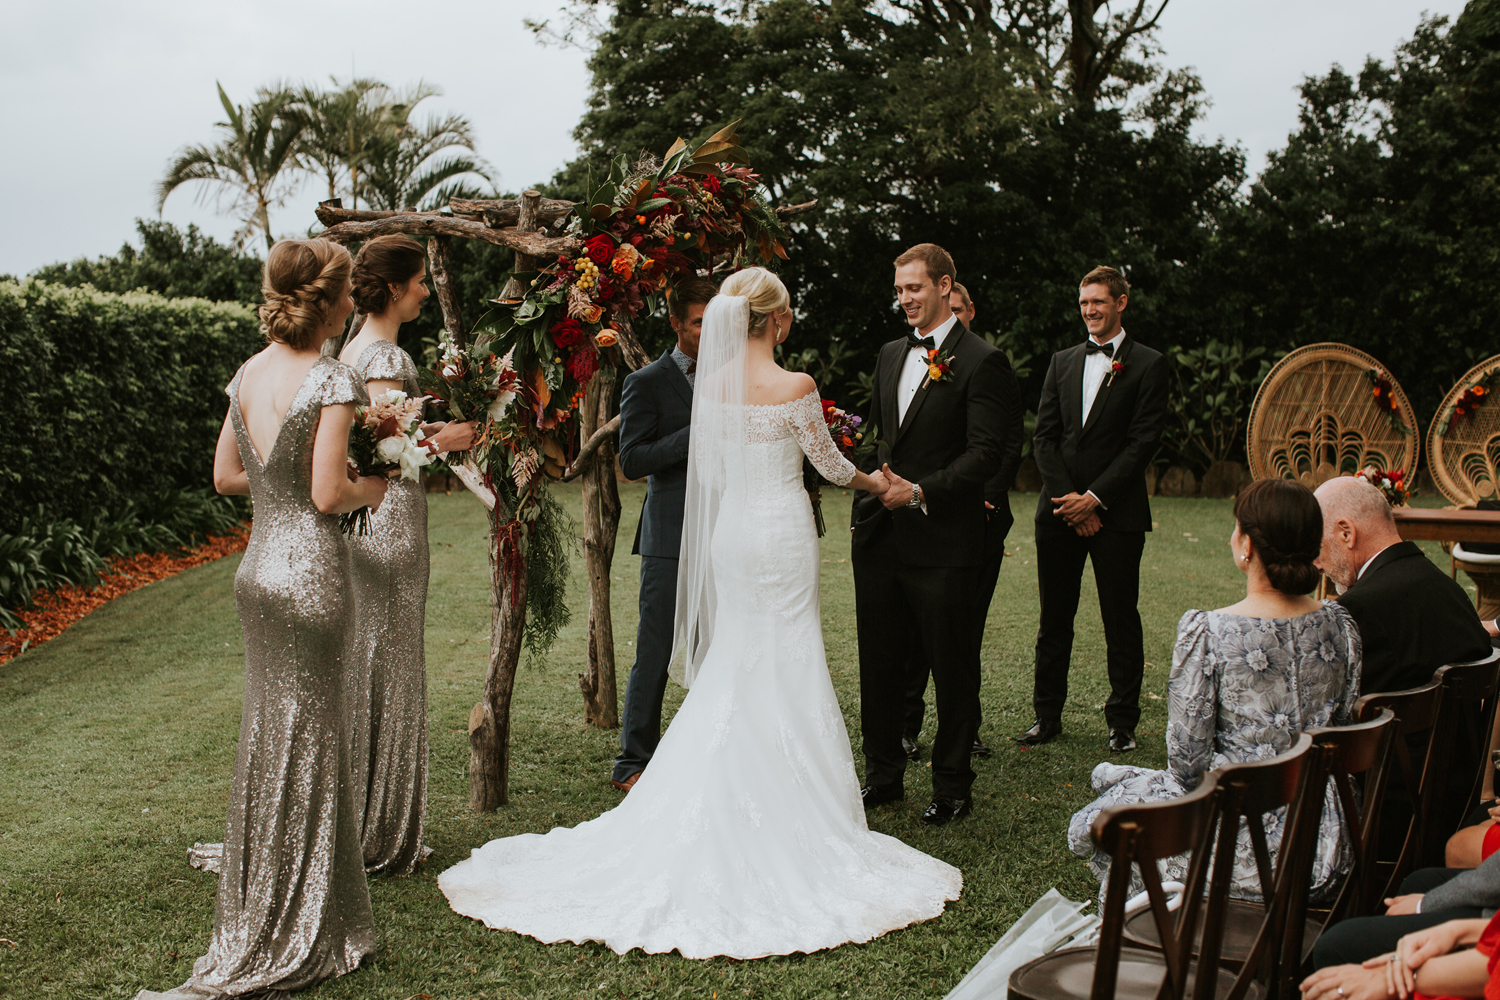 492-byron_bay_wedding_photographer.jpg